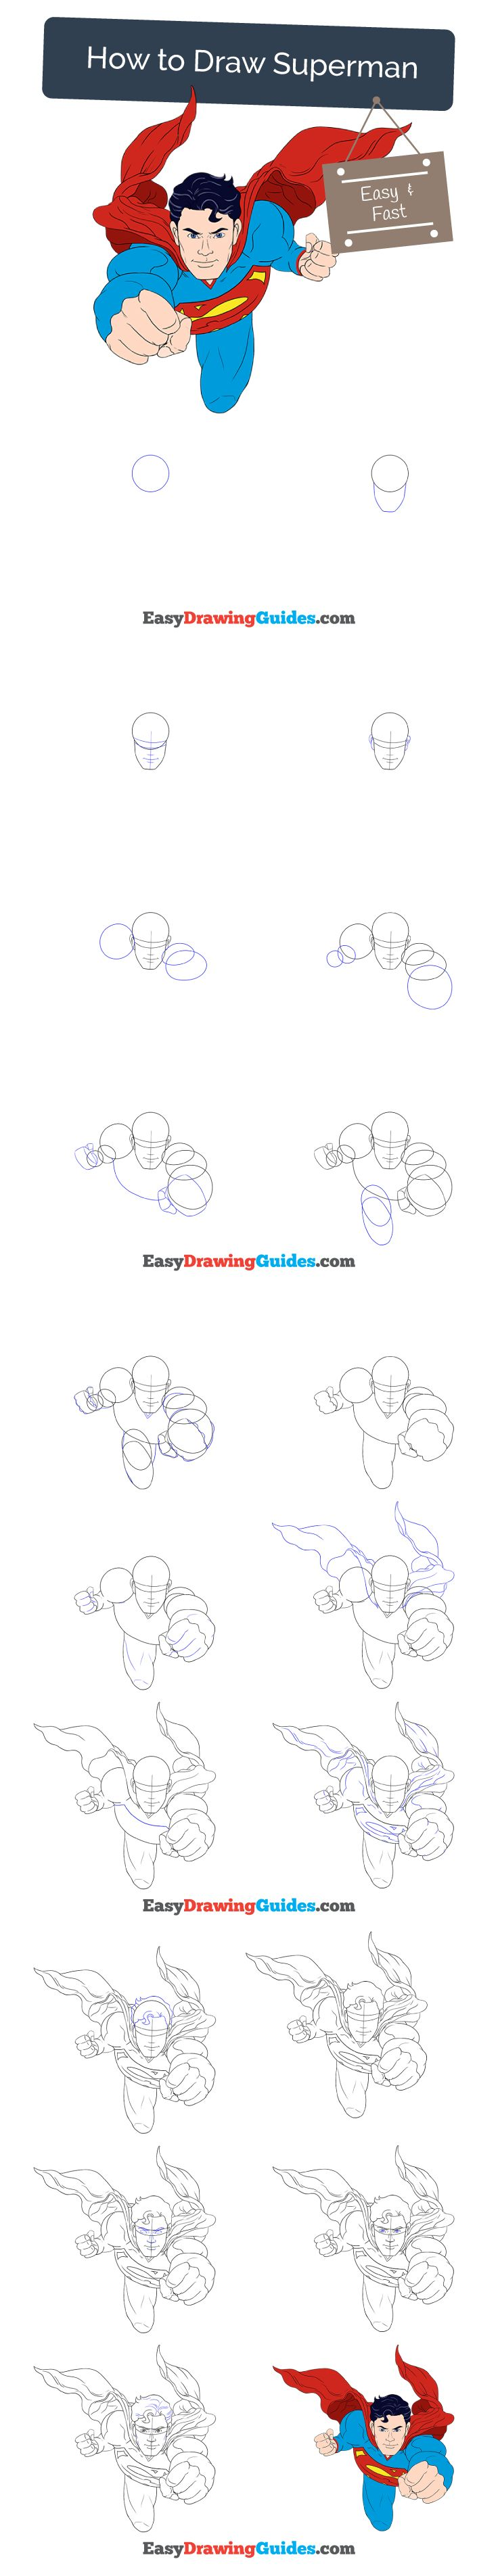 Learn How to Draw Superman: Easy Step-by-Step Drawing Tutorial for Kids and Beginners. #superman #drawing. See the full tutorial at https://easydrawingguides.com/how-to-draw-superman/